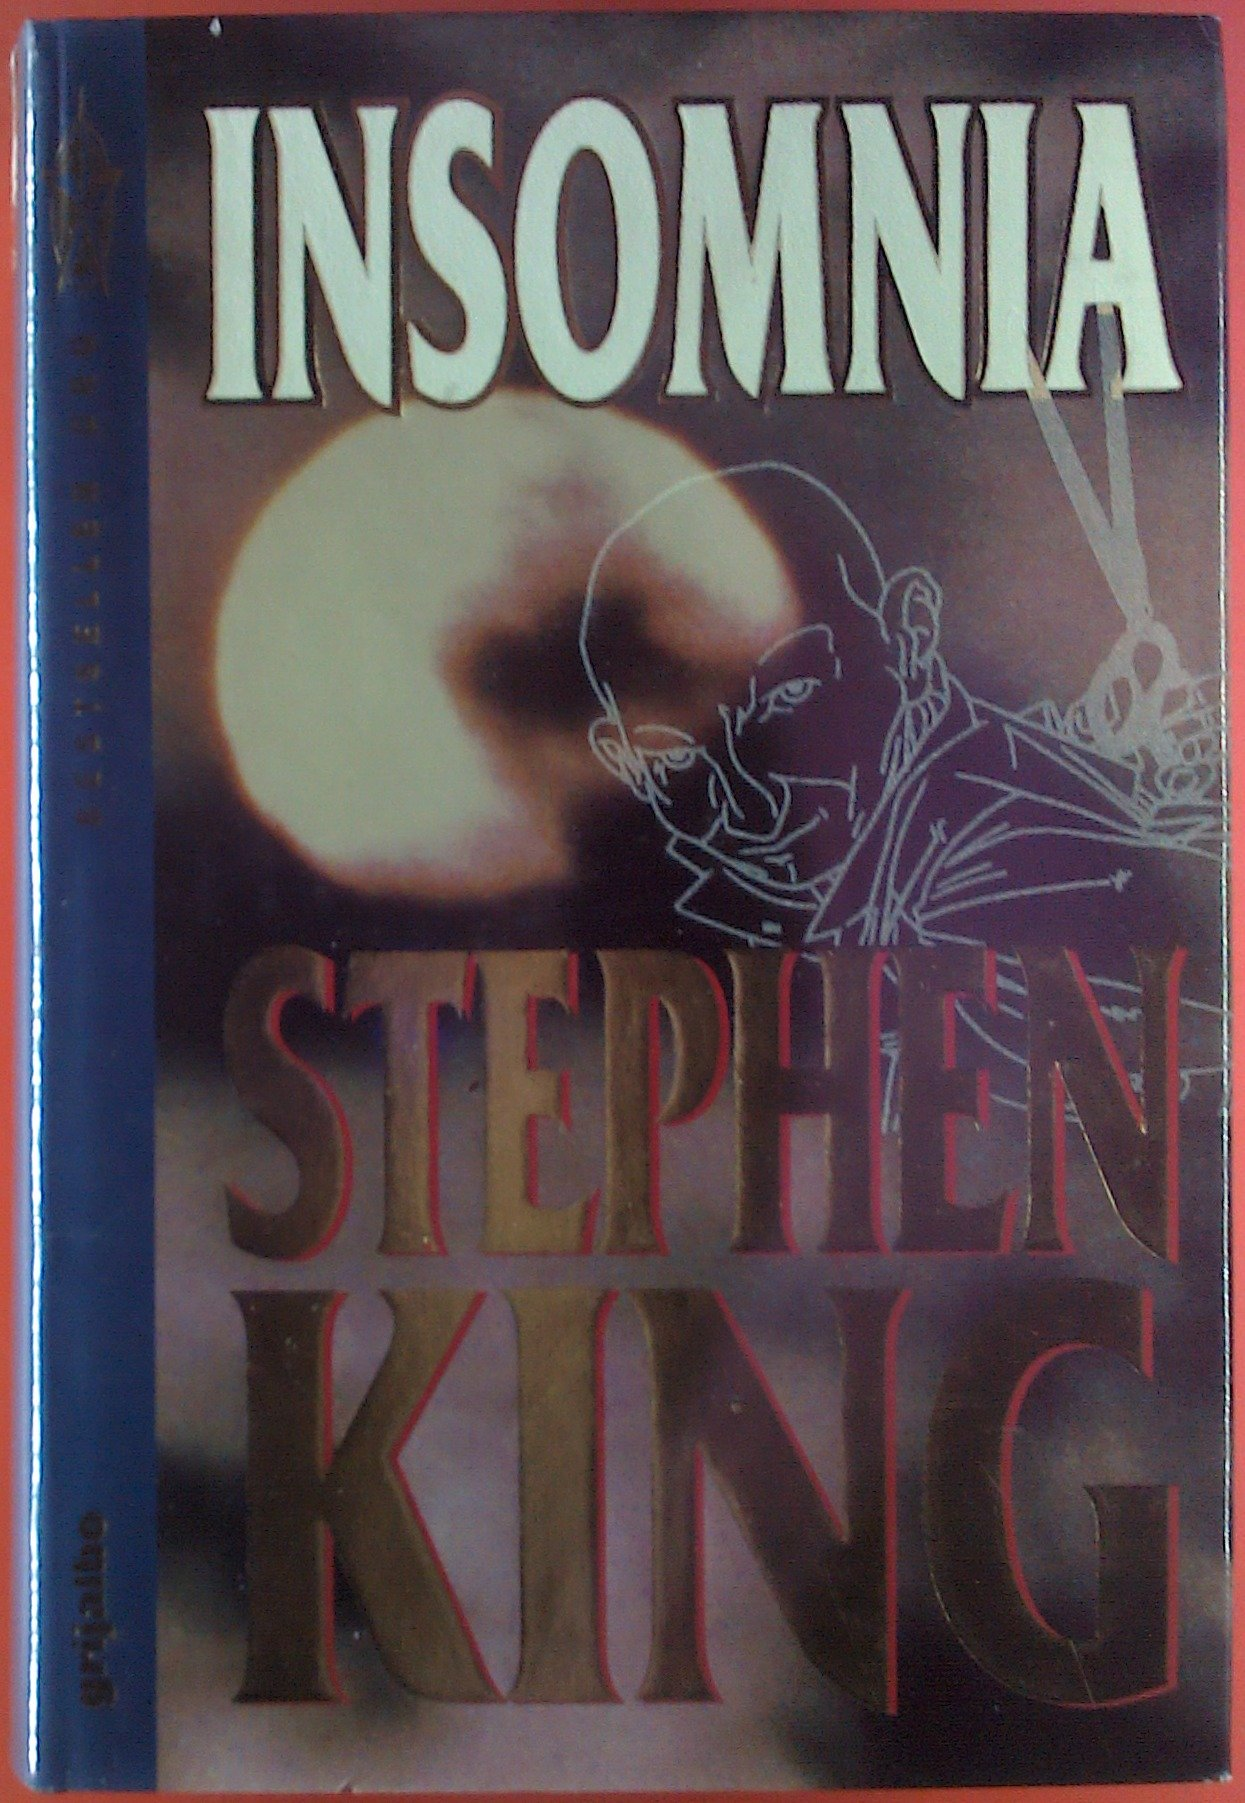 Insomnia: Stephen King, Bettina Blanch: 9788425327902 ...